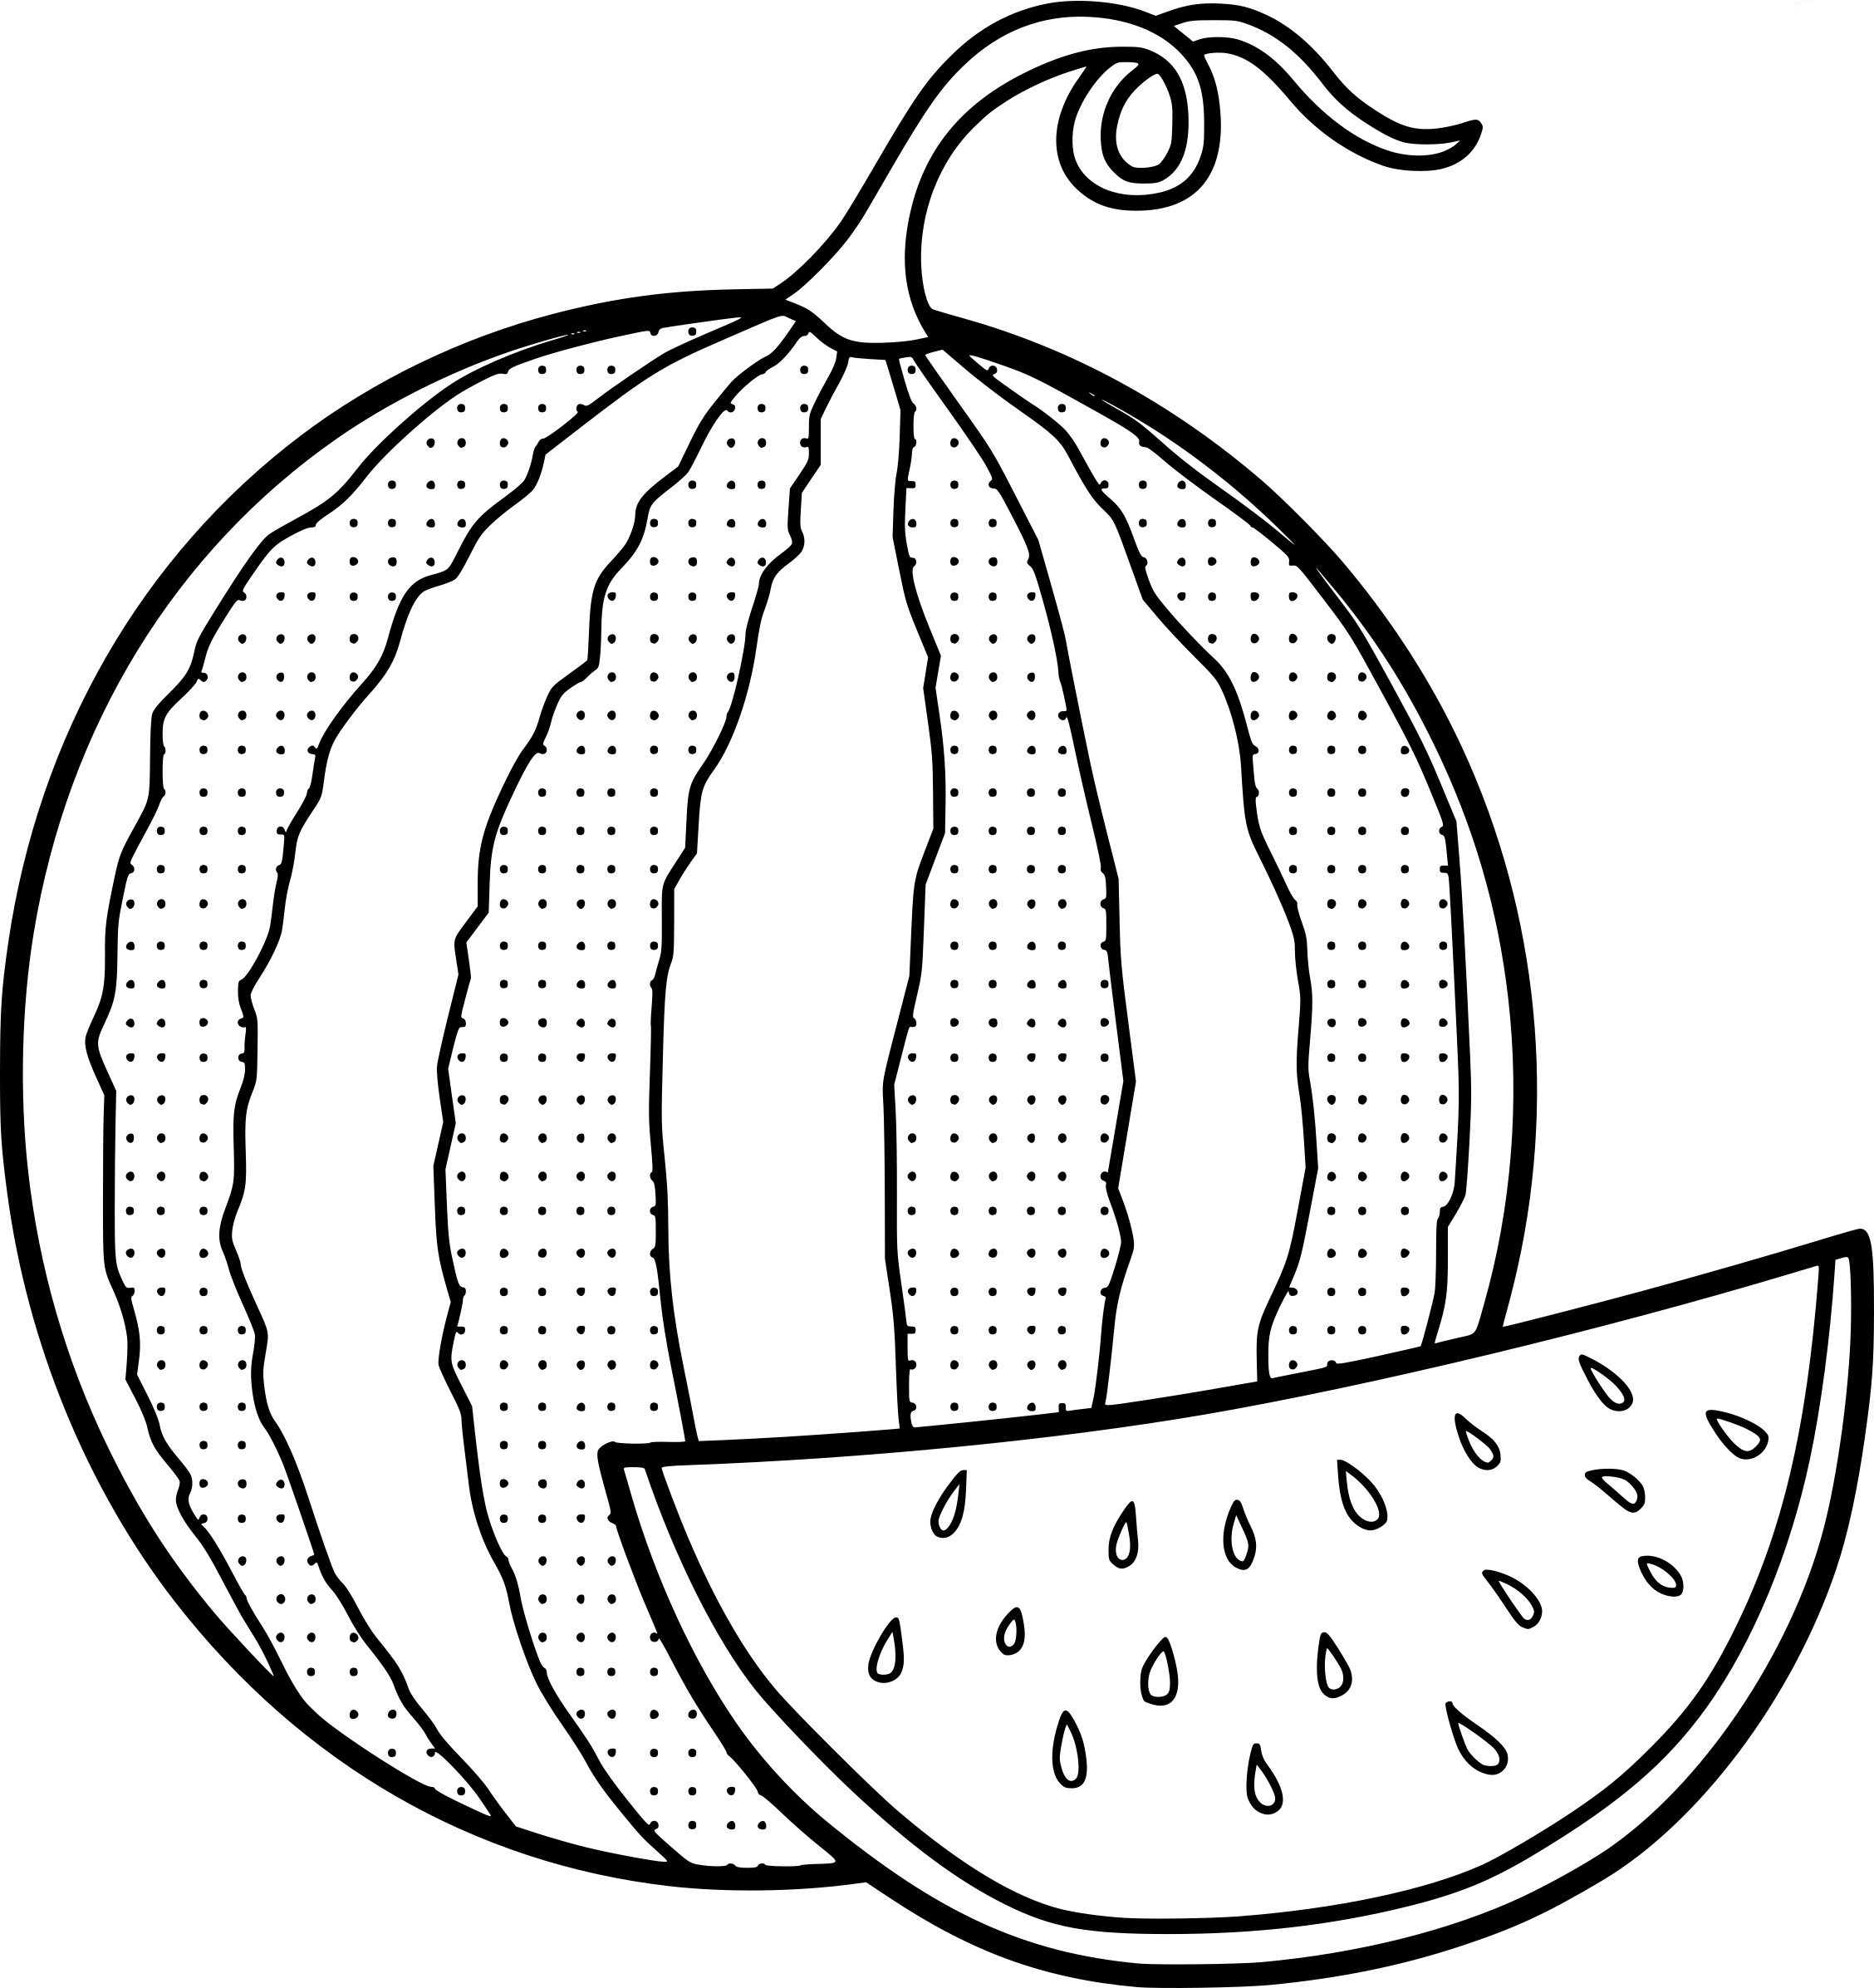 watermelon coloring pictures a z coloring activities healthy bodies project watermelon pictures coloring